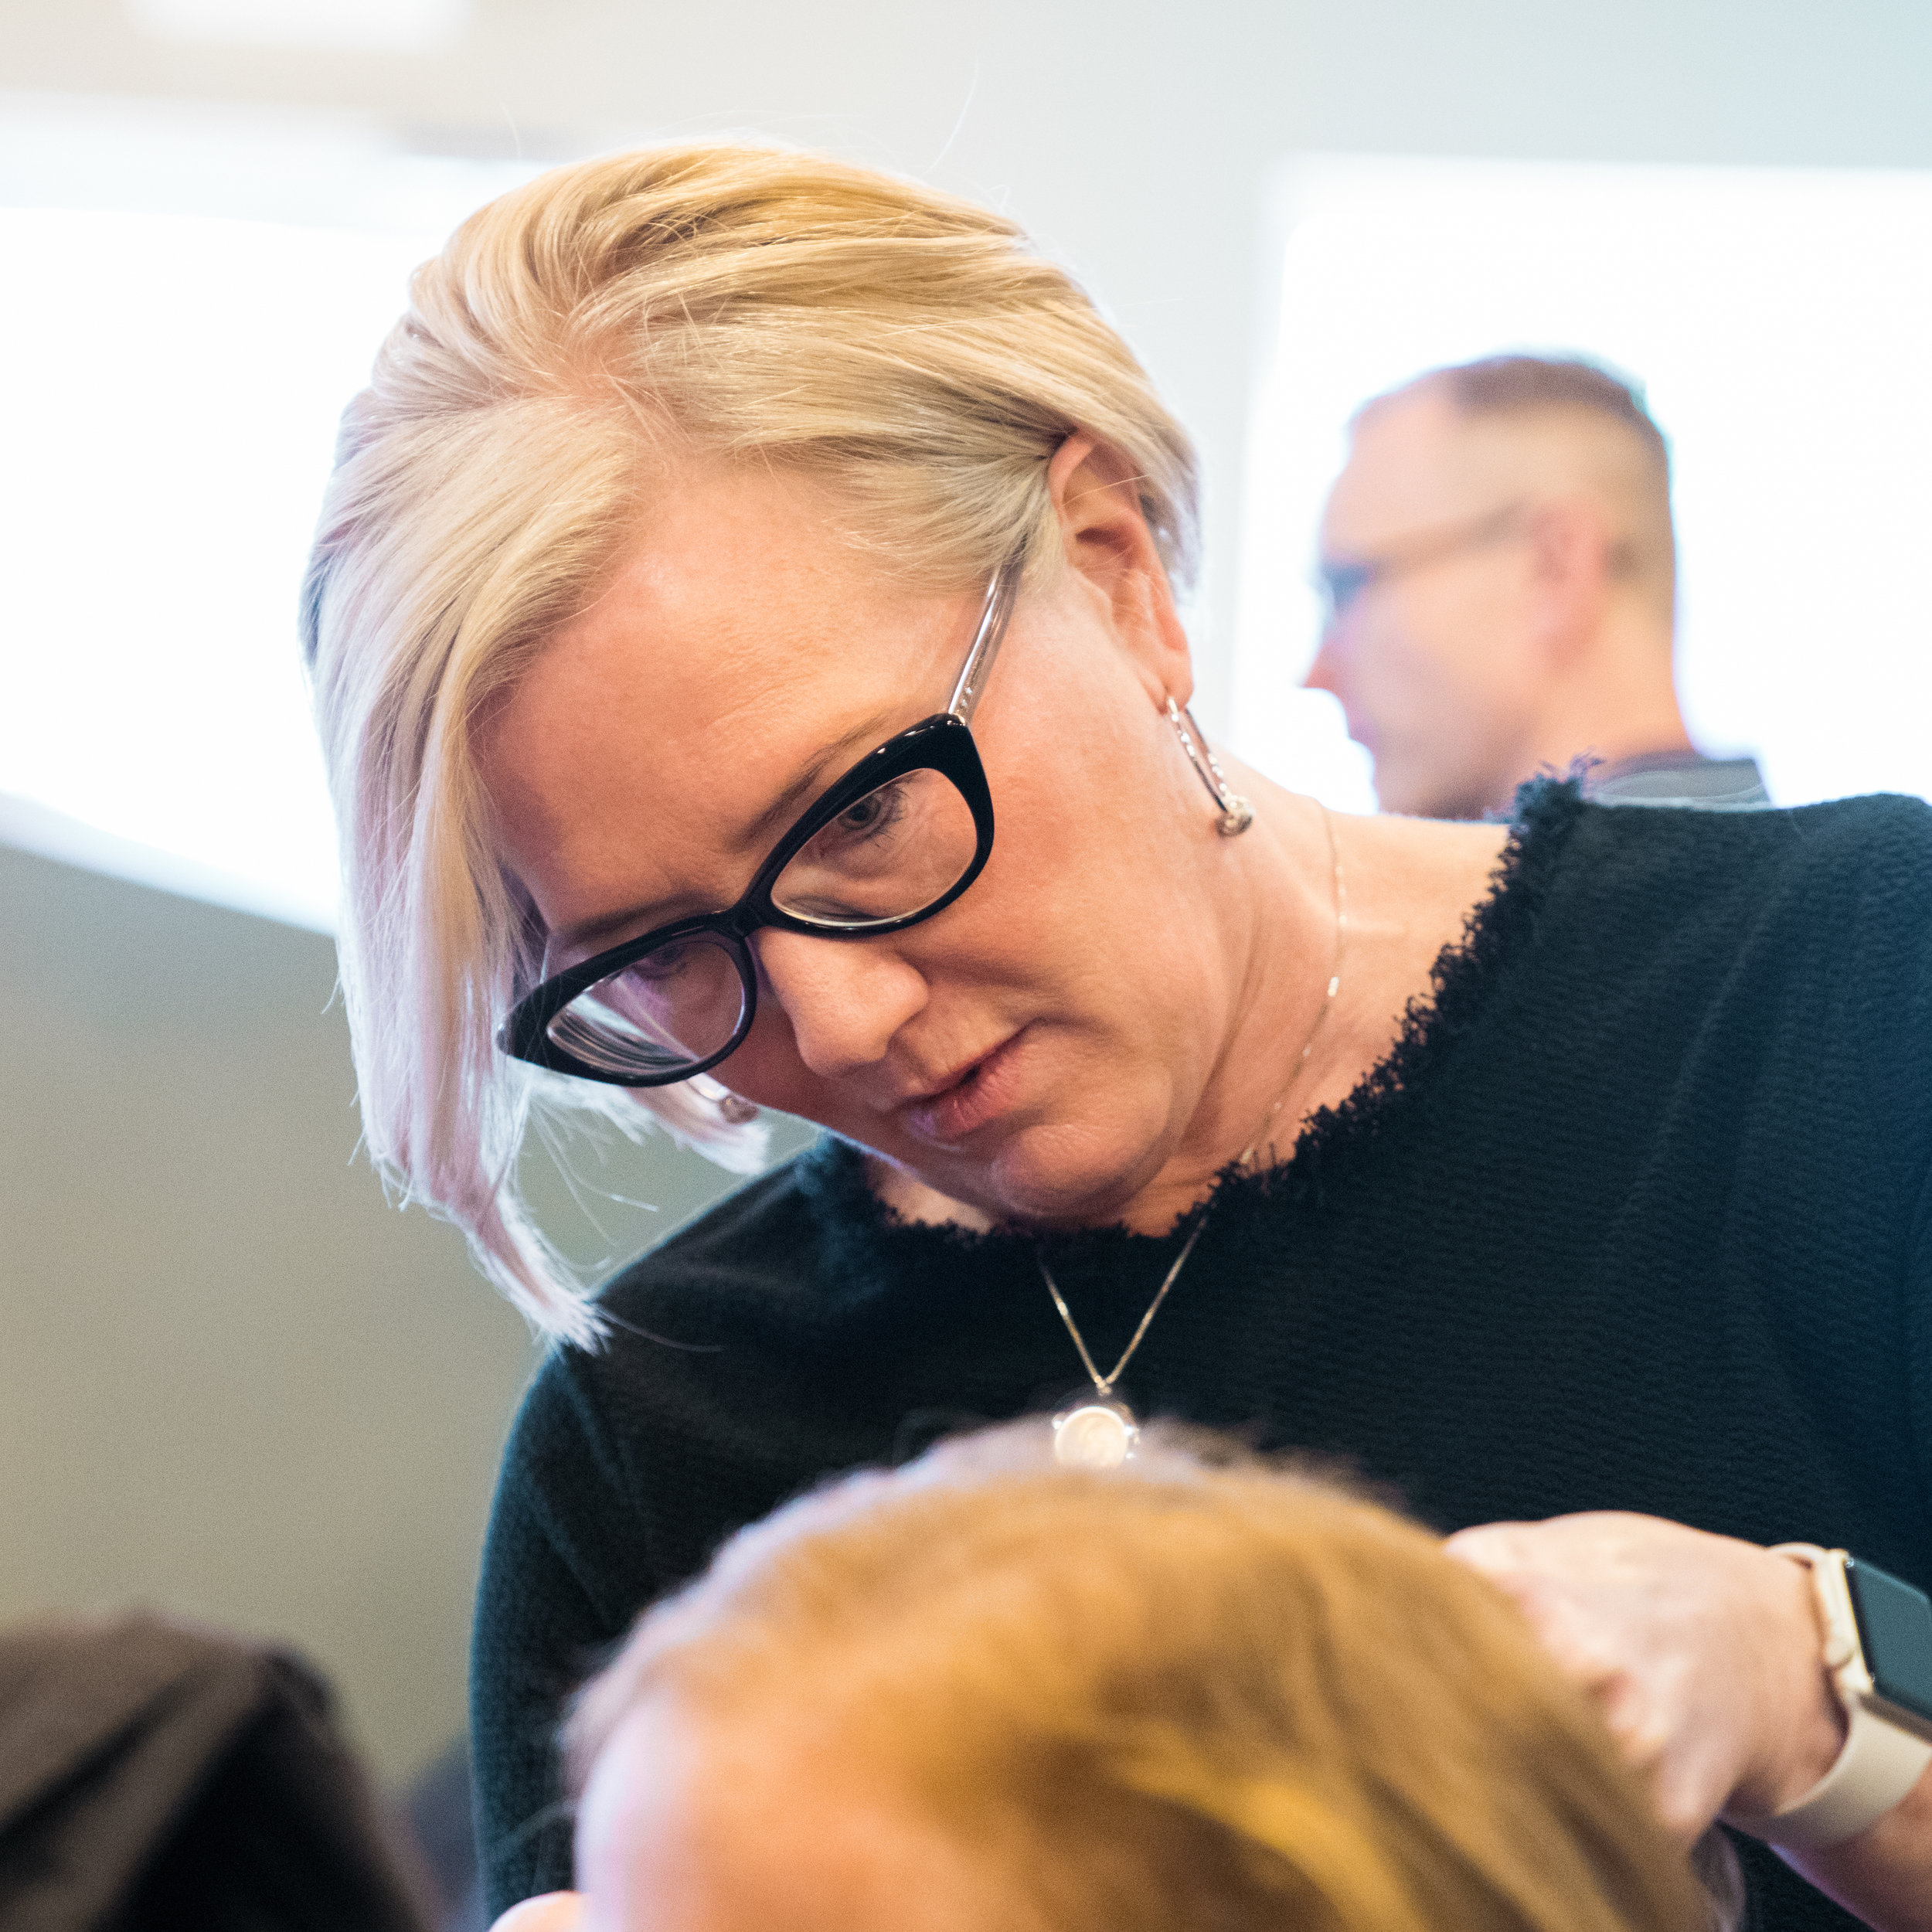 Rosanne Herd  Stylist  Rosanne has been a stylist at The Laura Gregory Salon since 2009.  She is a graduate of Nationwide Beauty Academy and Pivot Point International, and apprenticed with Michael Azzaro.  Rosanne is a naturally talented stylist who continues to hone her craft through continuing education classes and by successfully completing the training for the L'Oreal Professionnel Expert Network.  She loves cutting, coloring and styling hair, and especially finding the right look for each individual client.